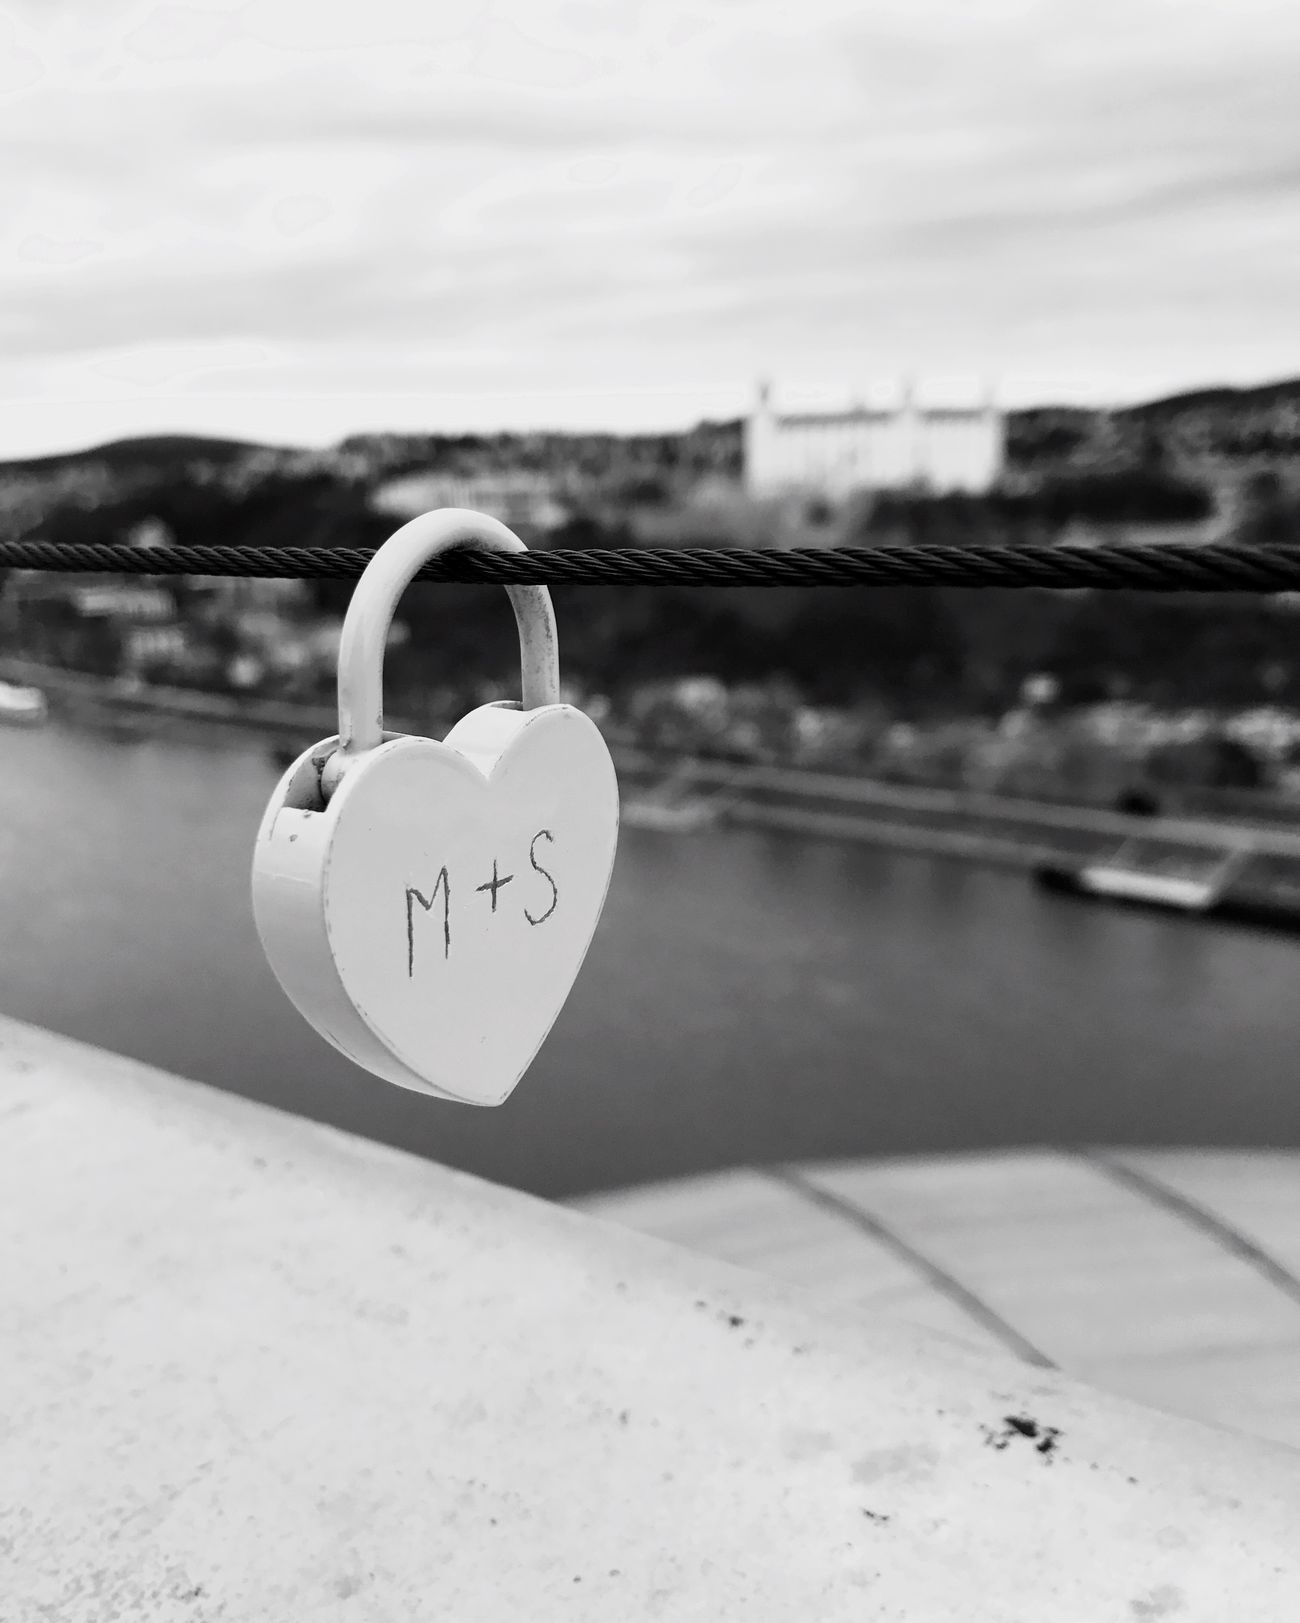 bratislava Padlock Love Heart Shape Sky Focus On Foreground Valentine Day - Holiday Text Outdoors Romance Day Communication Close-up Water No People